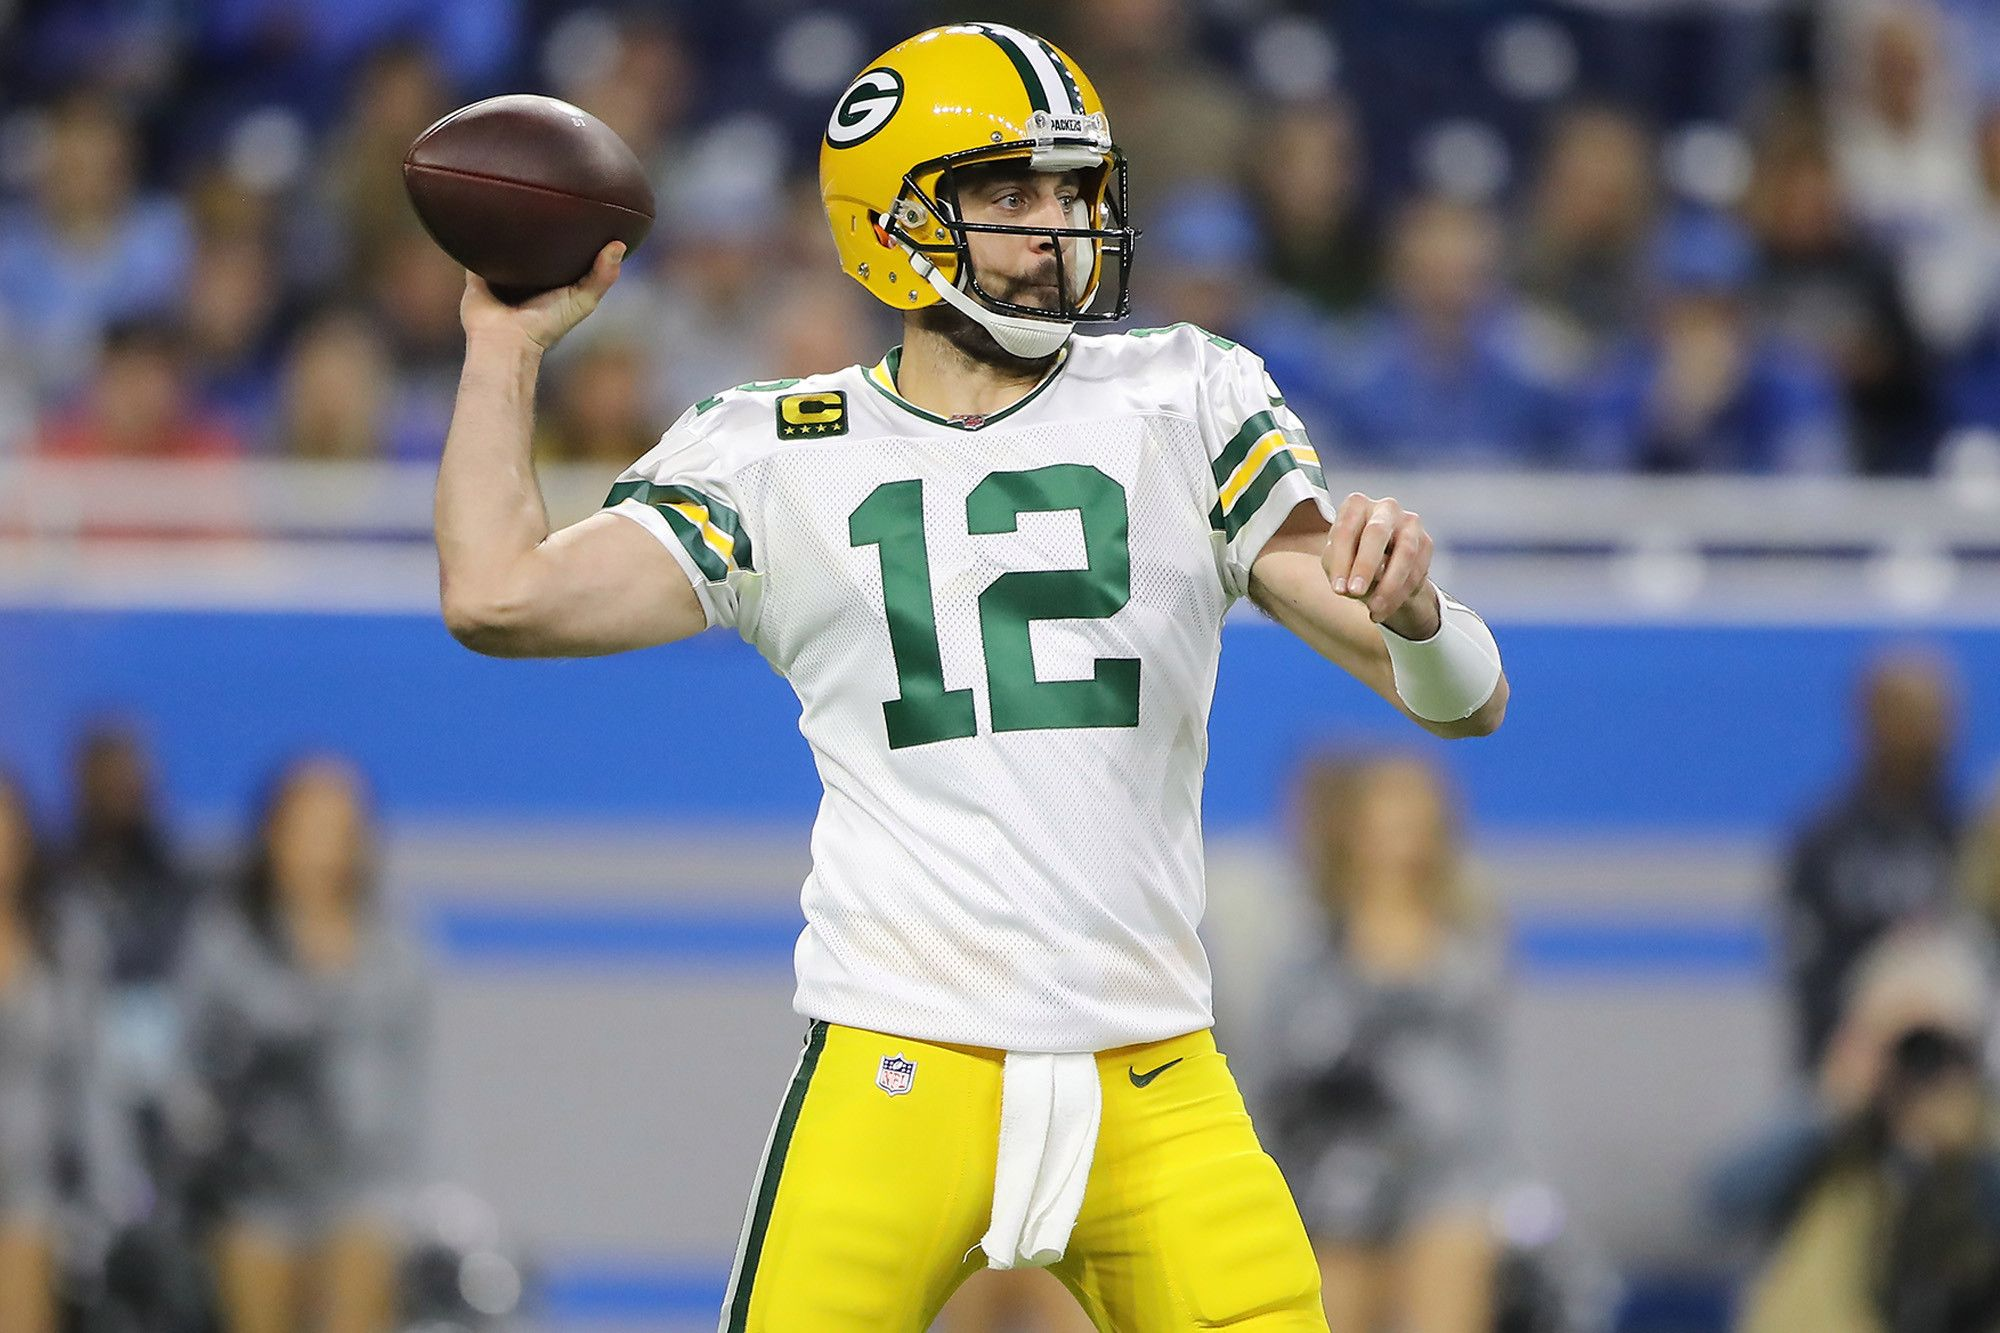 Aaron Rodgers New Packers Reality Is All About Urgency National Football League News Aaron Rodgers Knows Father T In 2020 National Football Football League Nfl News